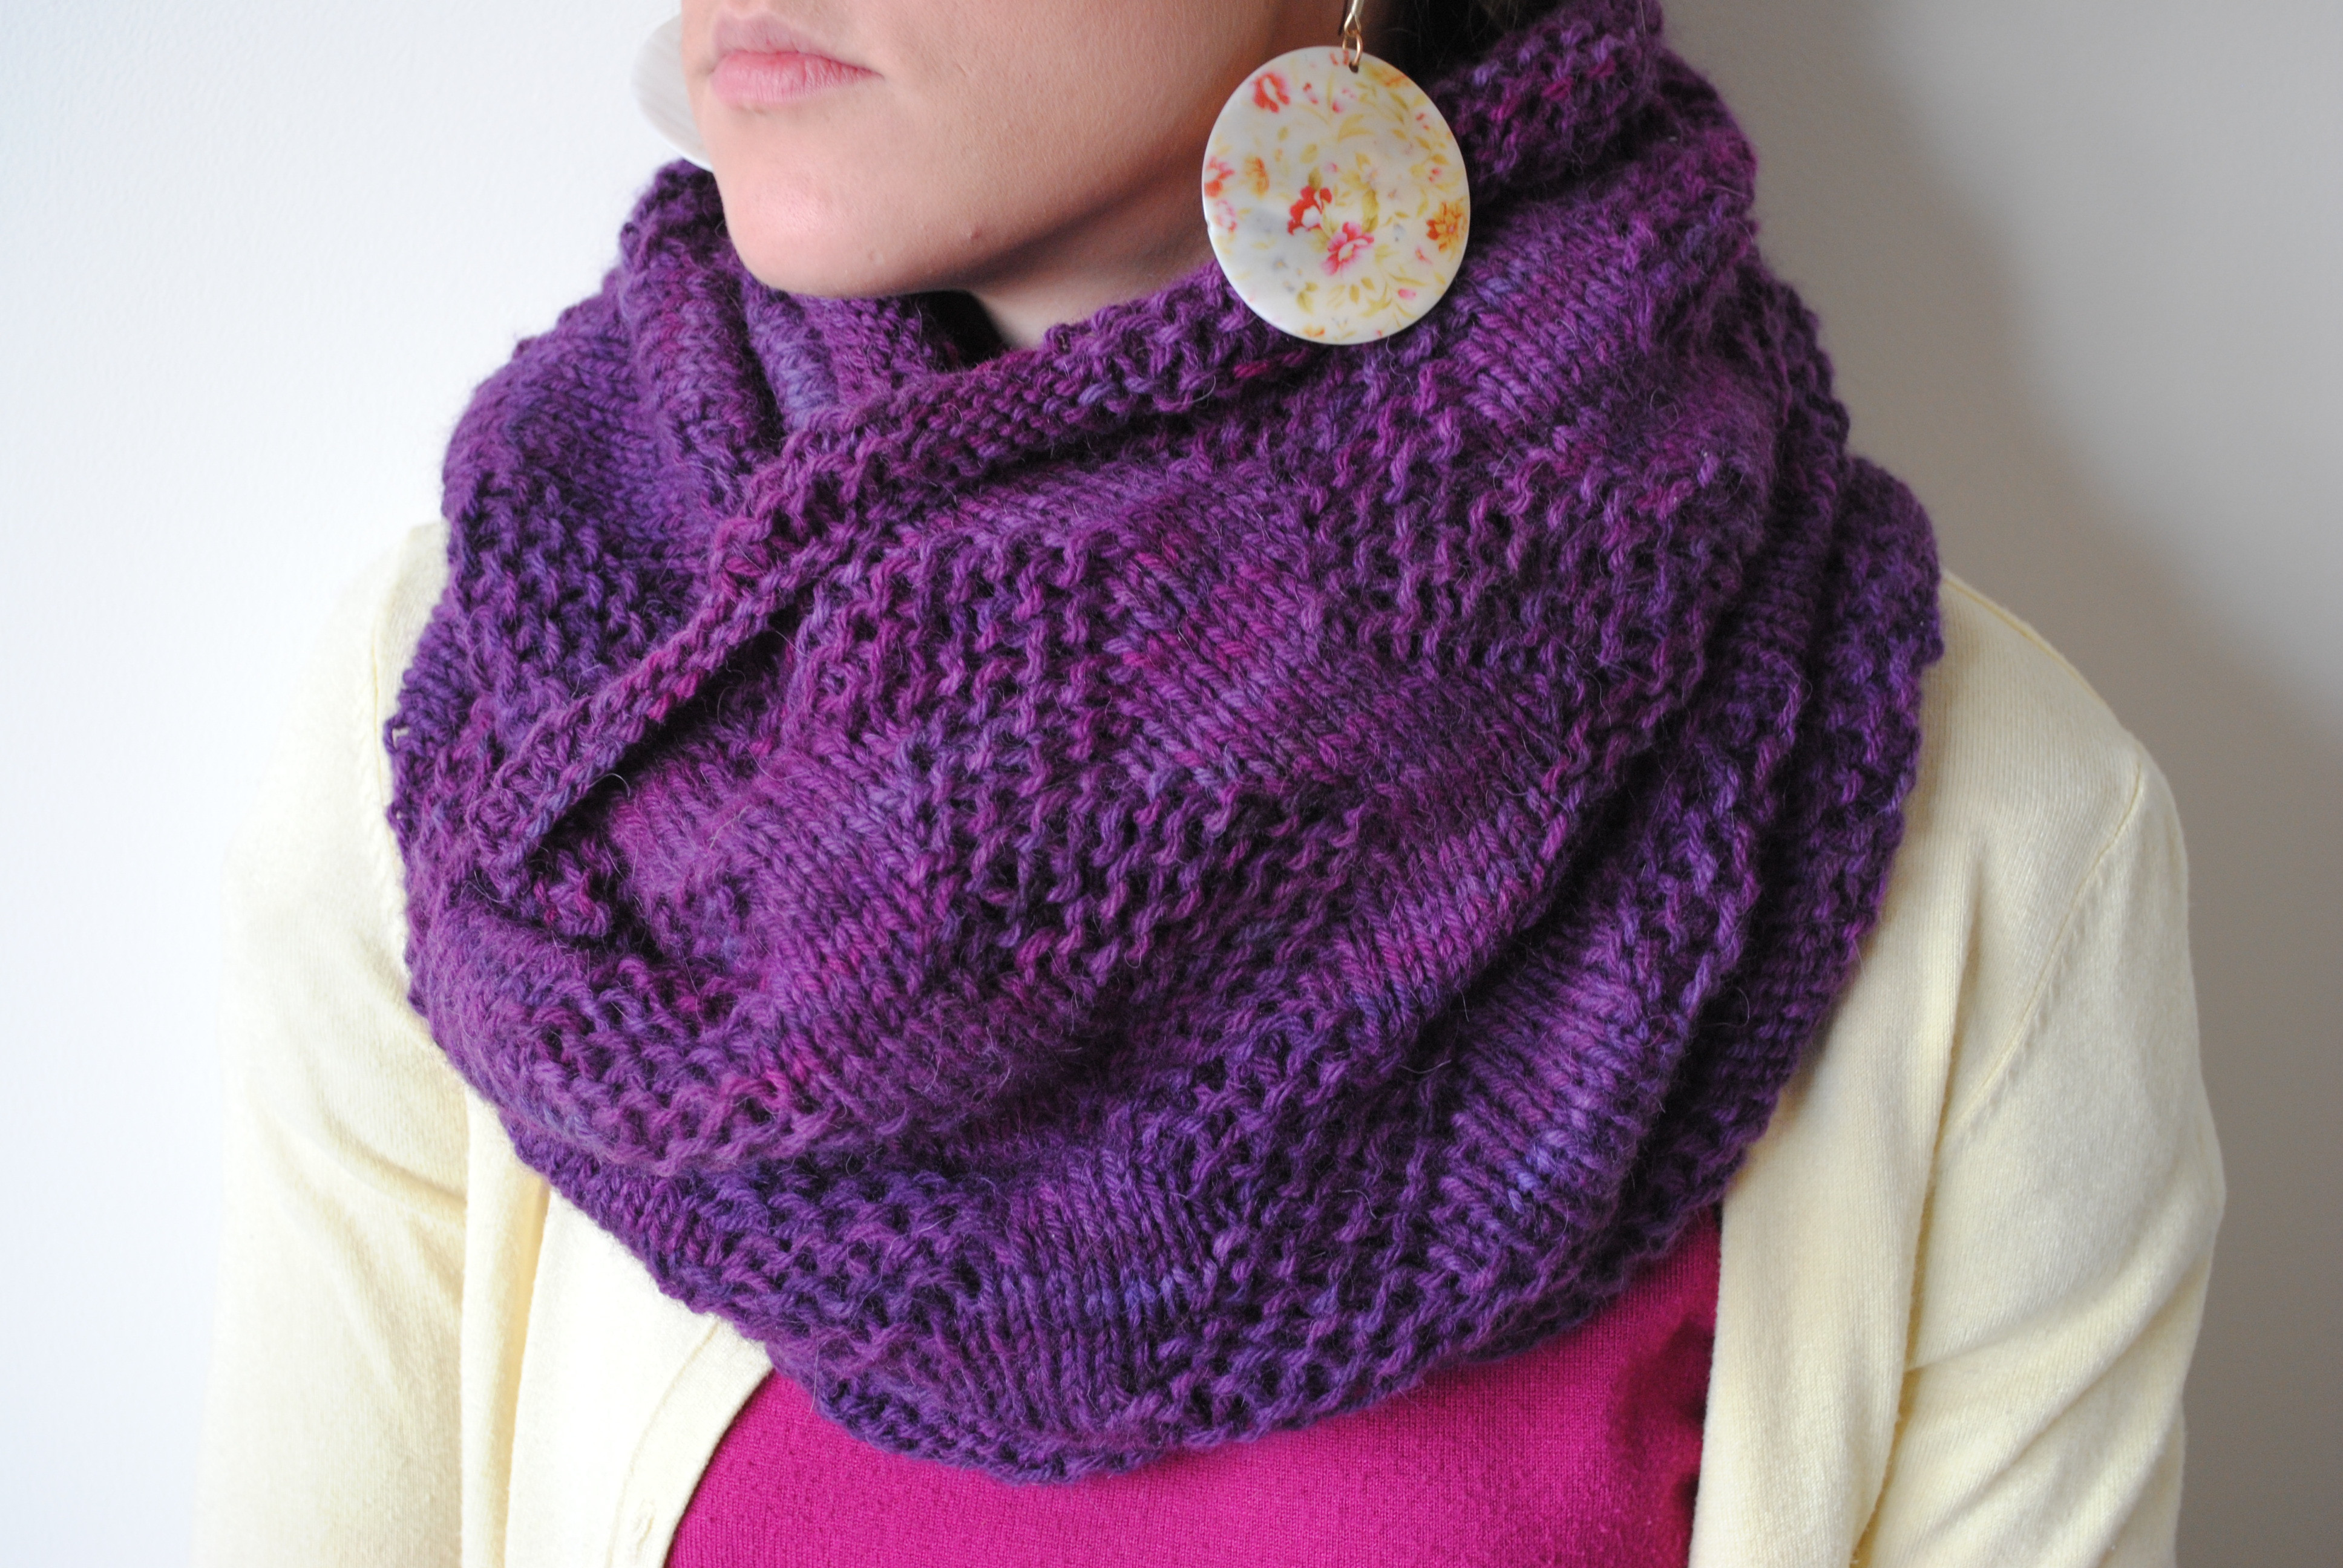 Knit Infinity Scarf Beautiful Purple Chevron Infinity Scarf Of Wonderful 49 Photos Knit Infinity Scarf